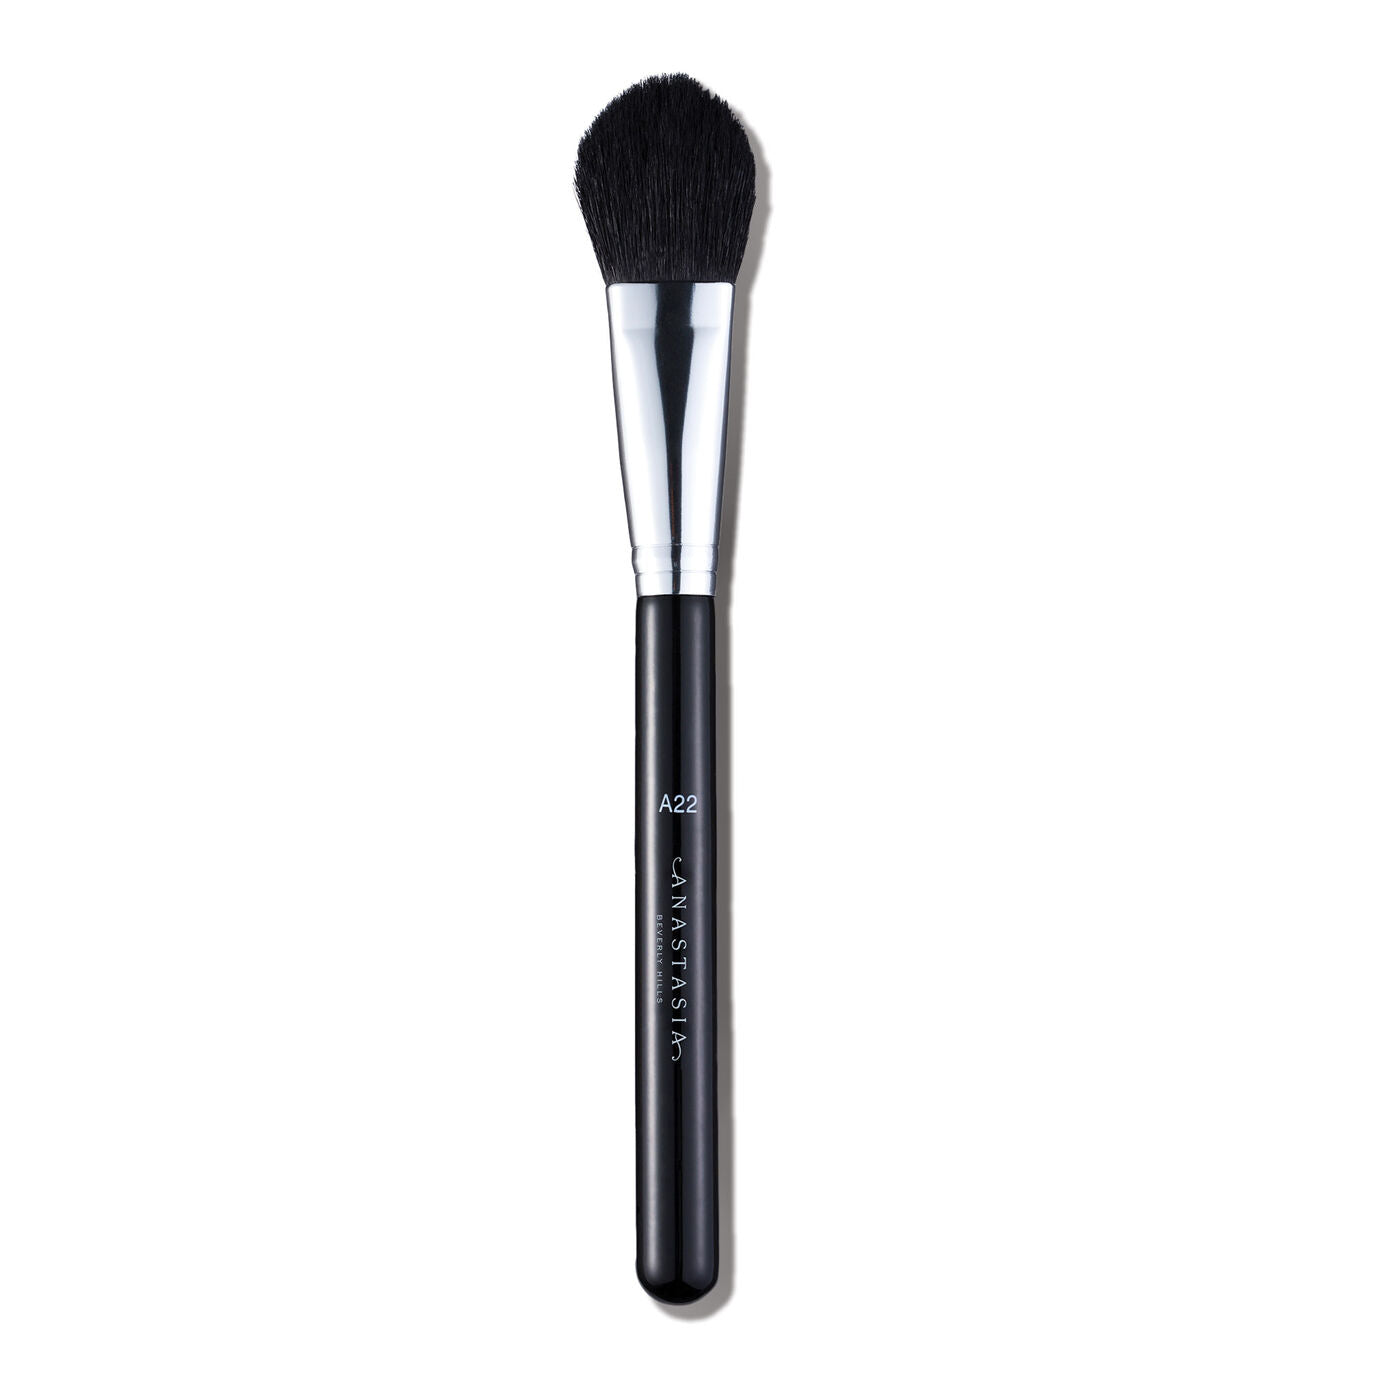 Anastasia Beverly Hills A22 Pro Brush - Pointed Cheek Brush, contour brush, London Loves Beauty